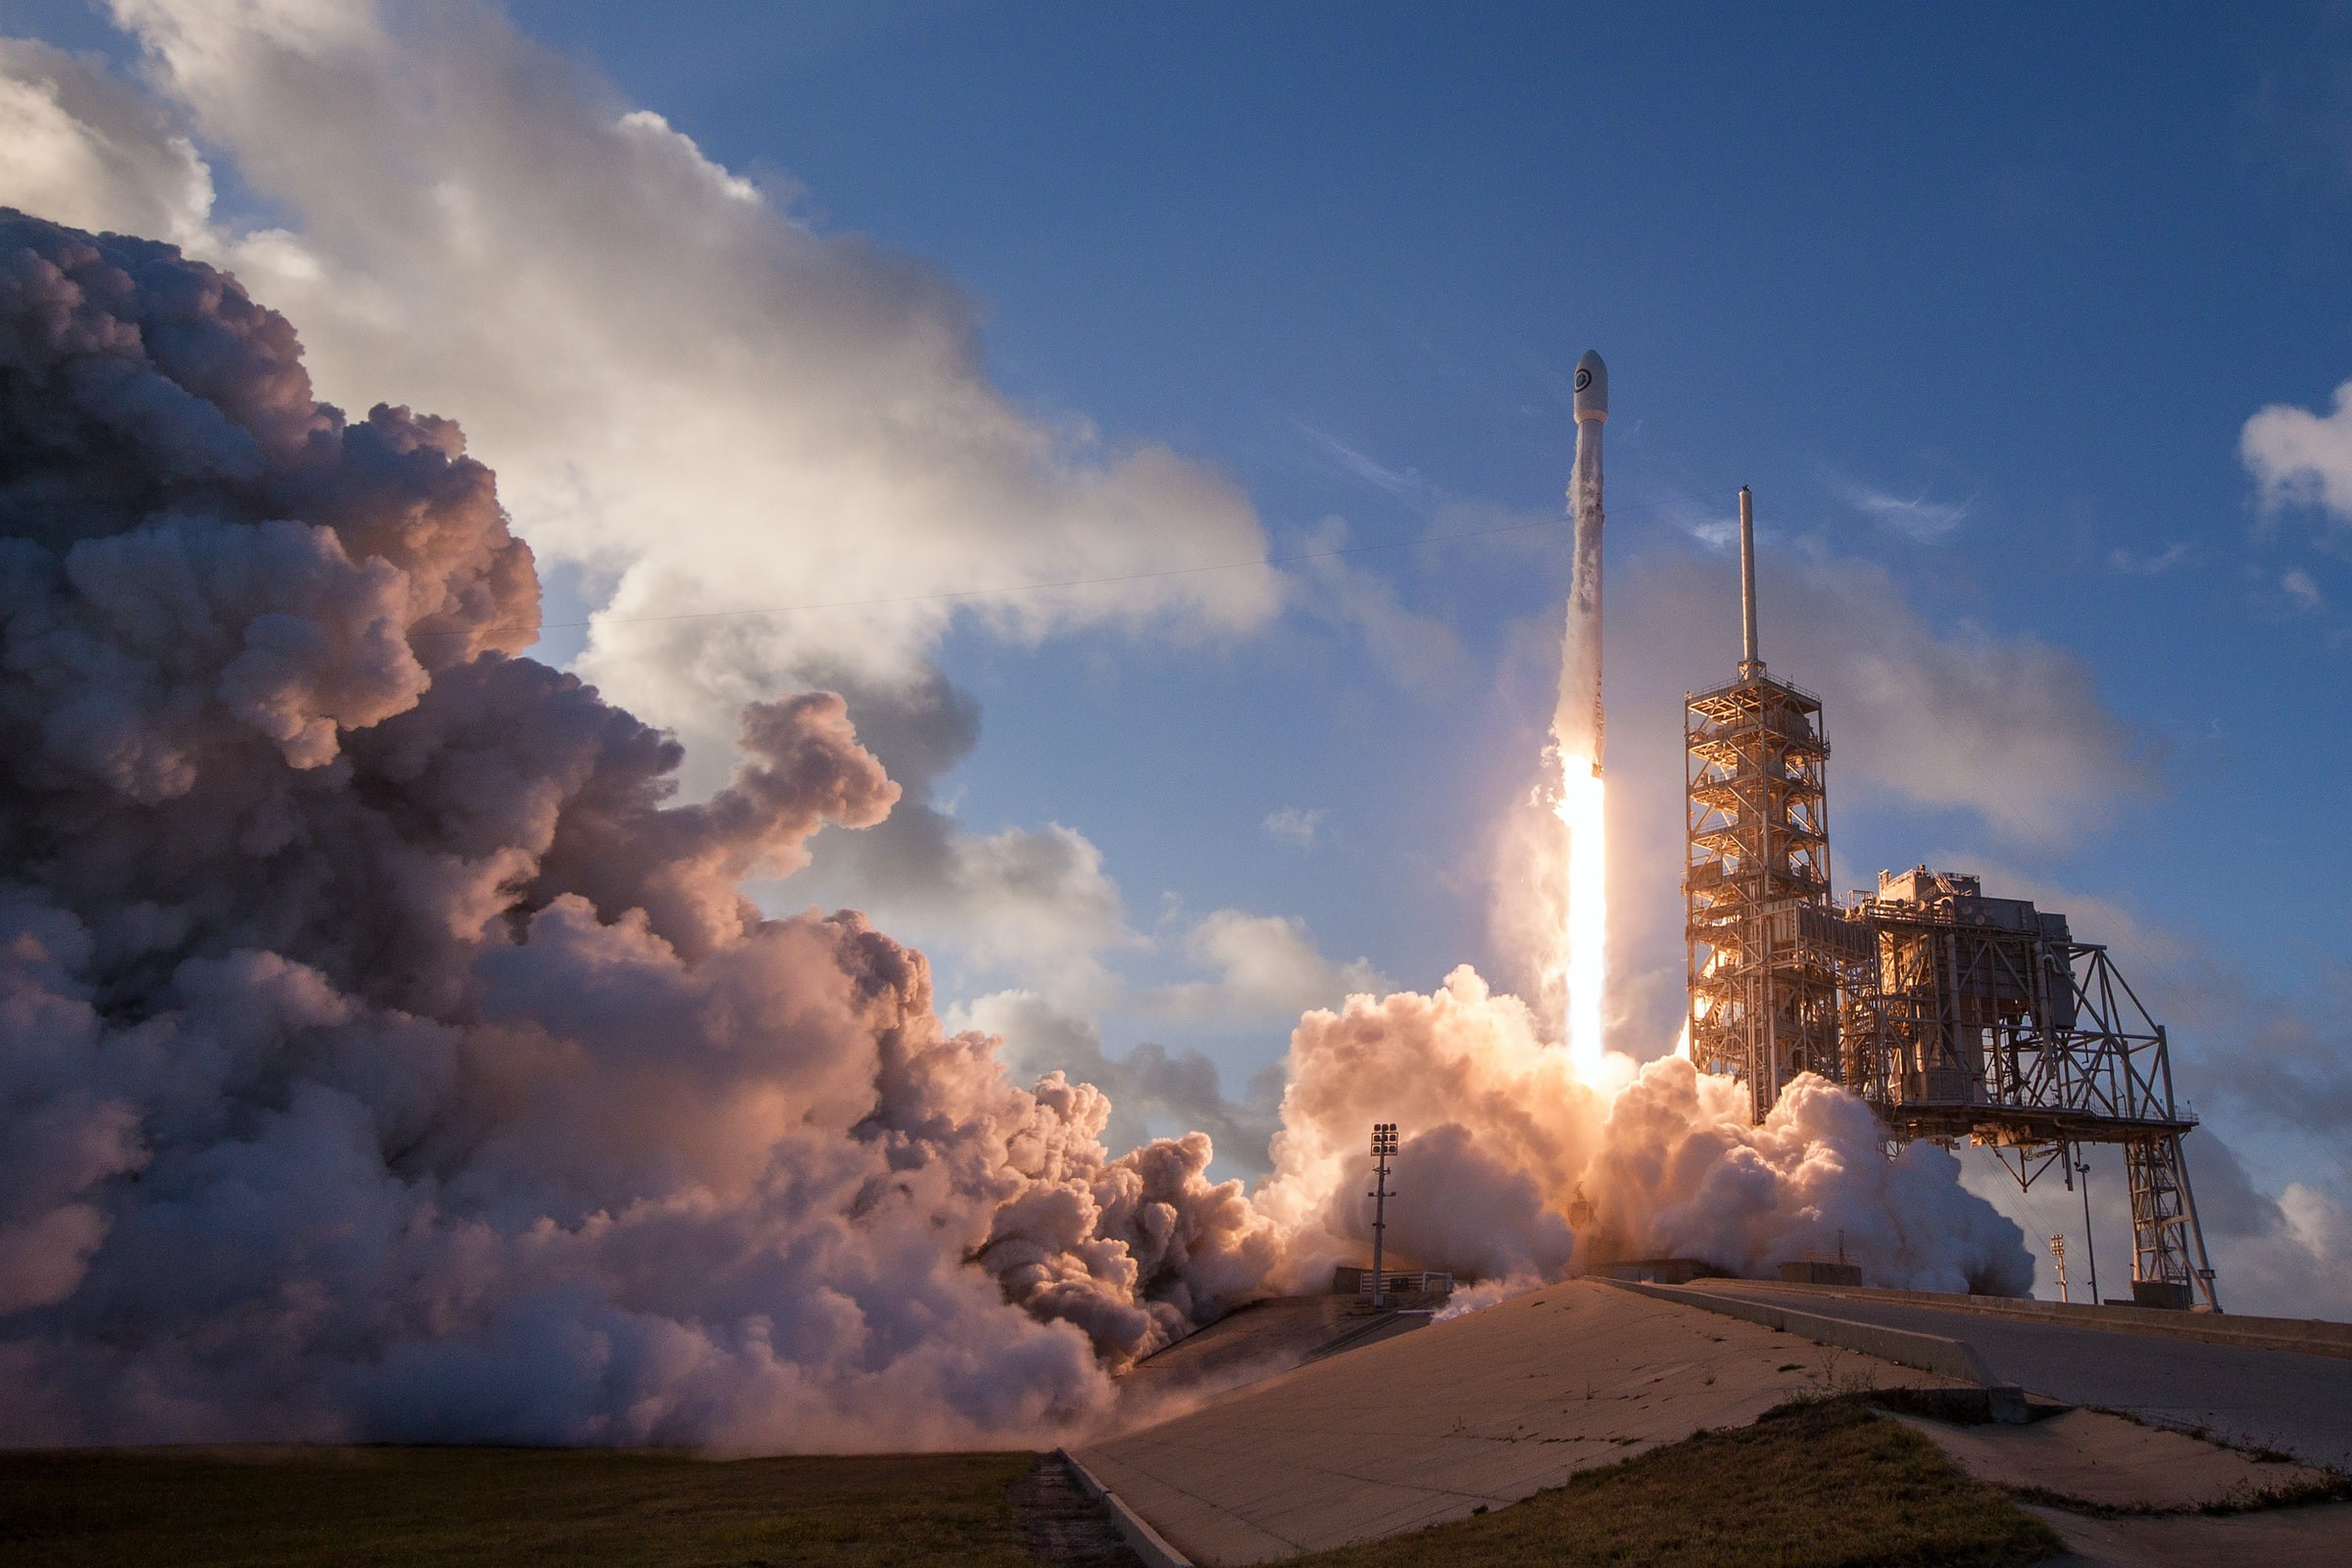 Rocket launching into space.